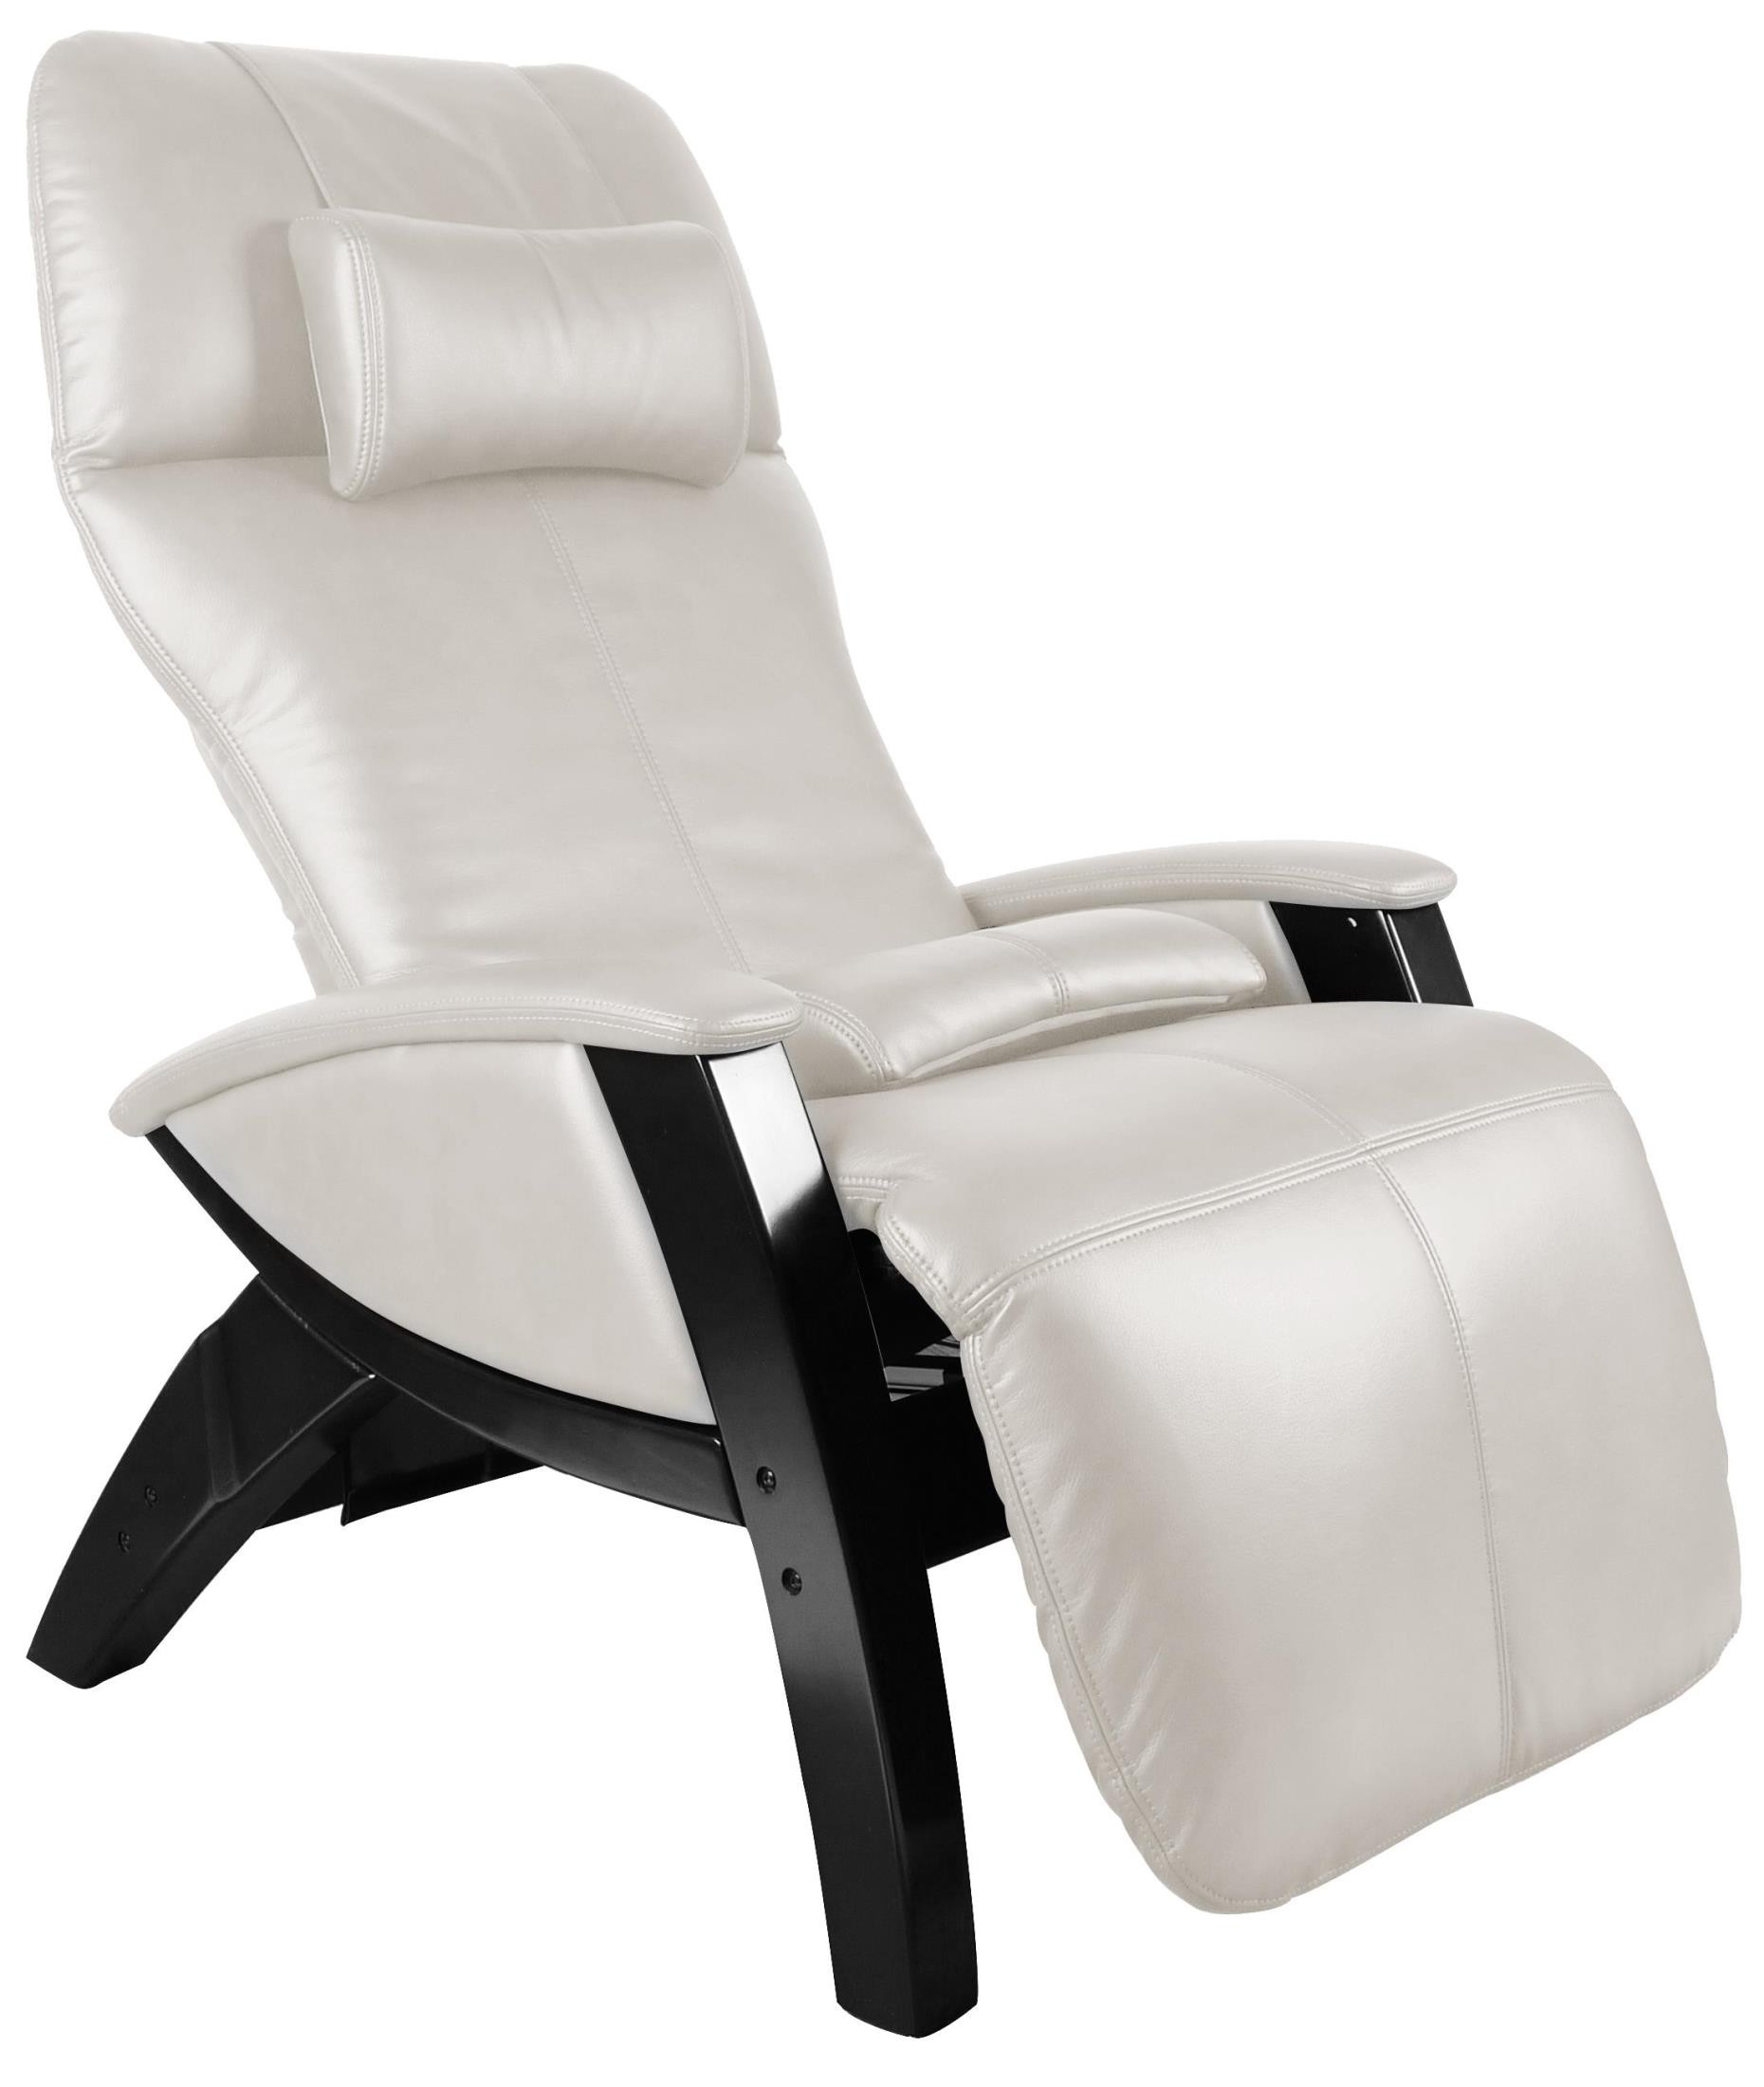 svago zg ivory chair from svago sv401 30 bl coleman furniture